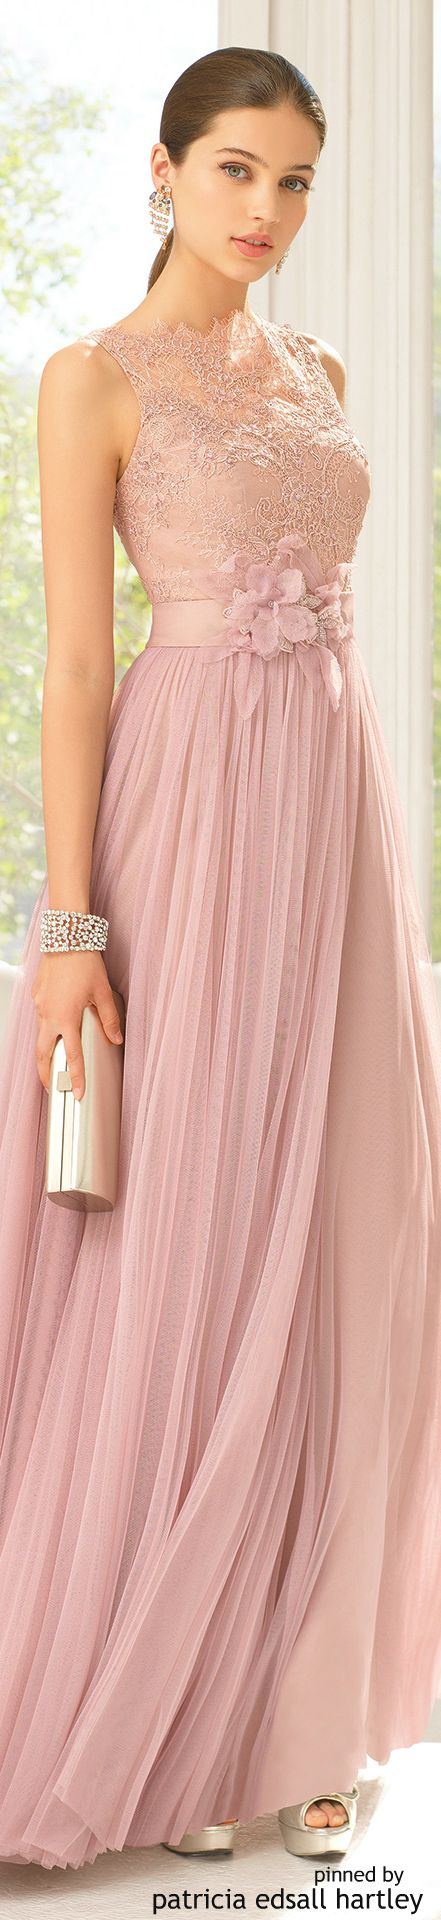 143 best vestidos images on Pinterest | Cute dresses, Club outfits ...